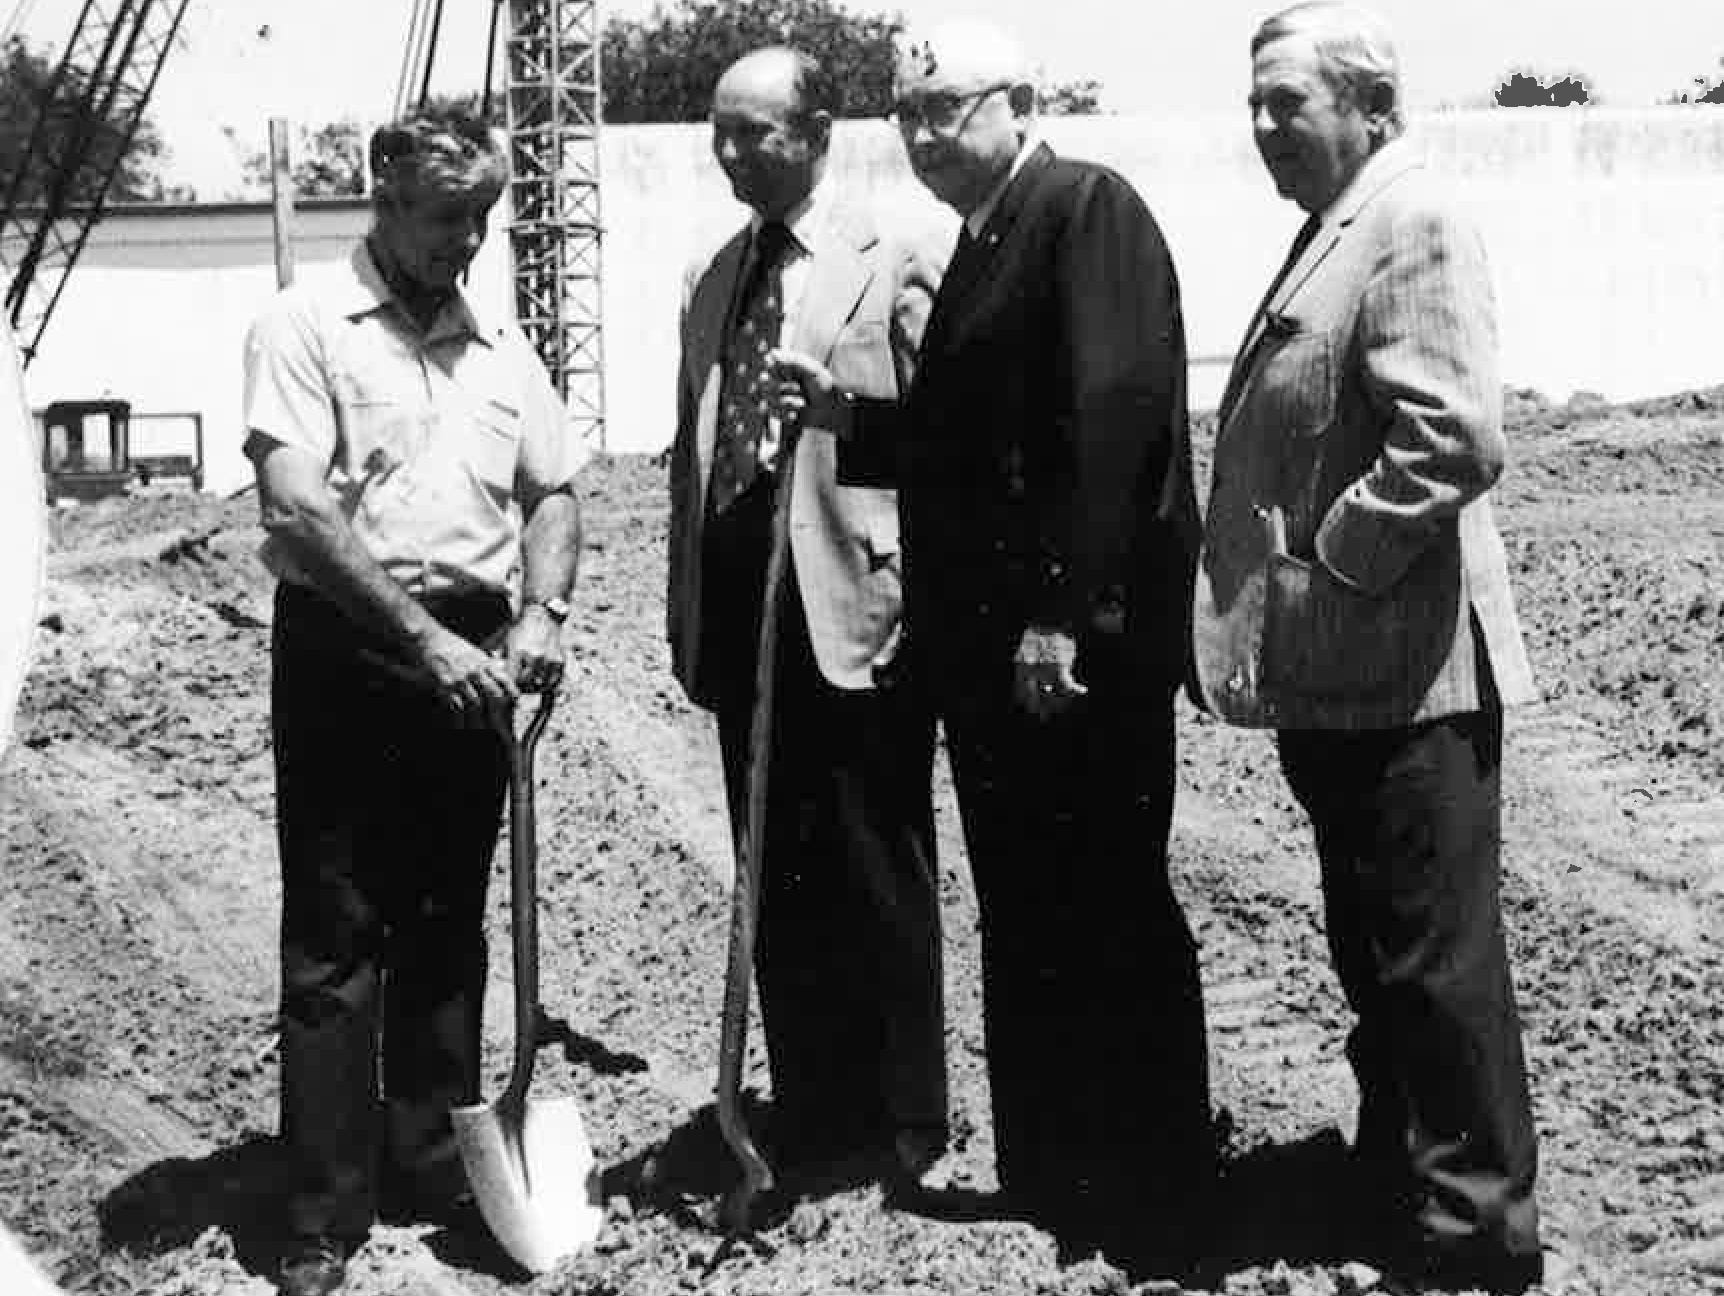 The Vero Beach Community Theatre Trust Board was established in the late 1960s. It took five years to raise the $1.5 million in private donations needed to build the theater.  C. Carrol Otto, pictured on the far right, at the construction site in 1972.